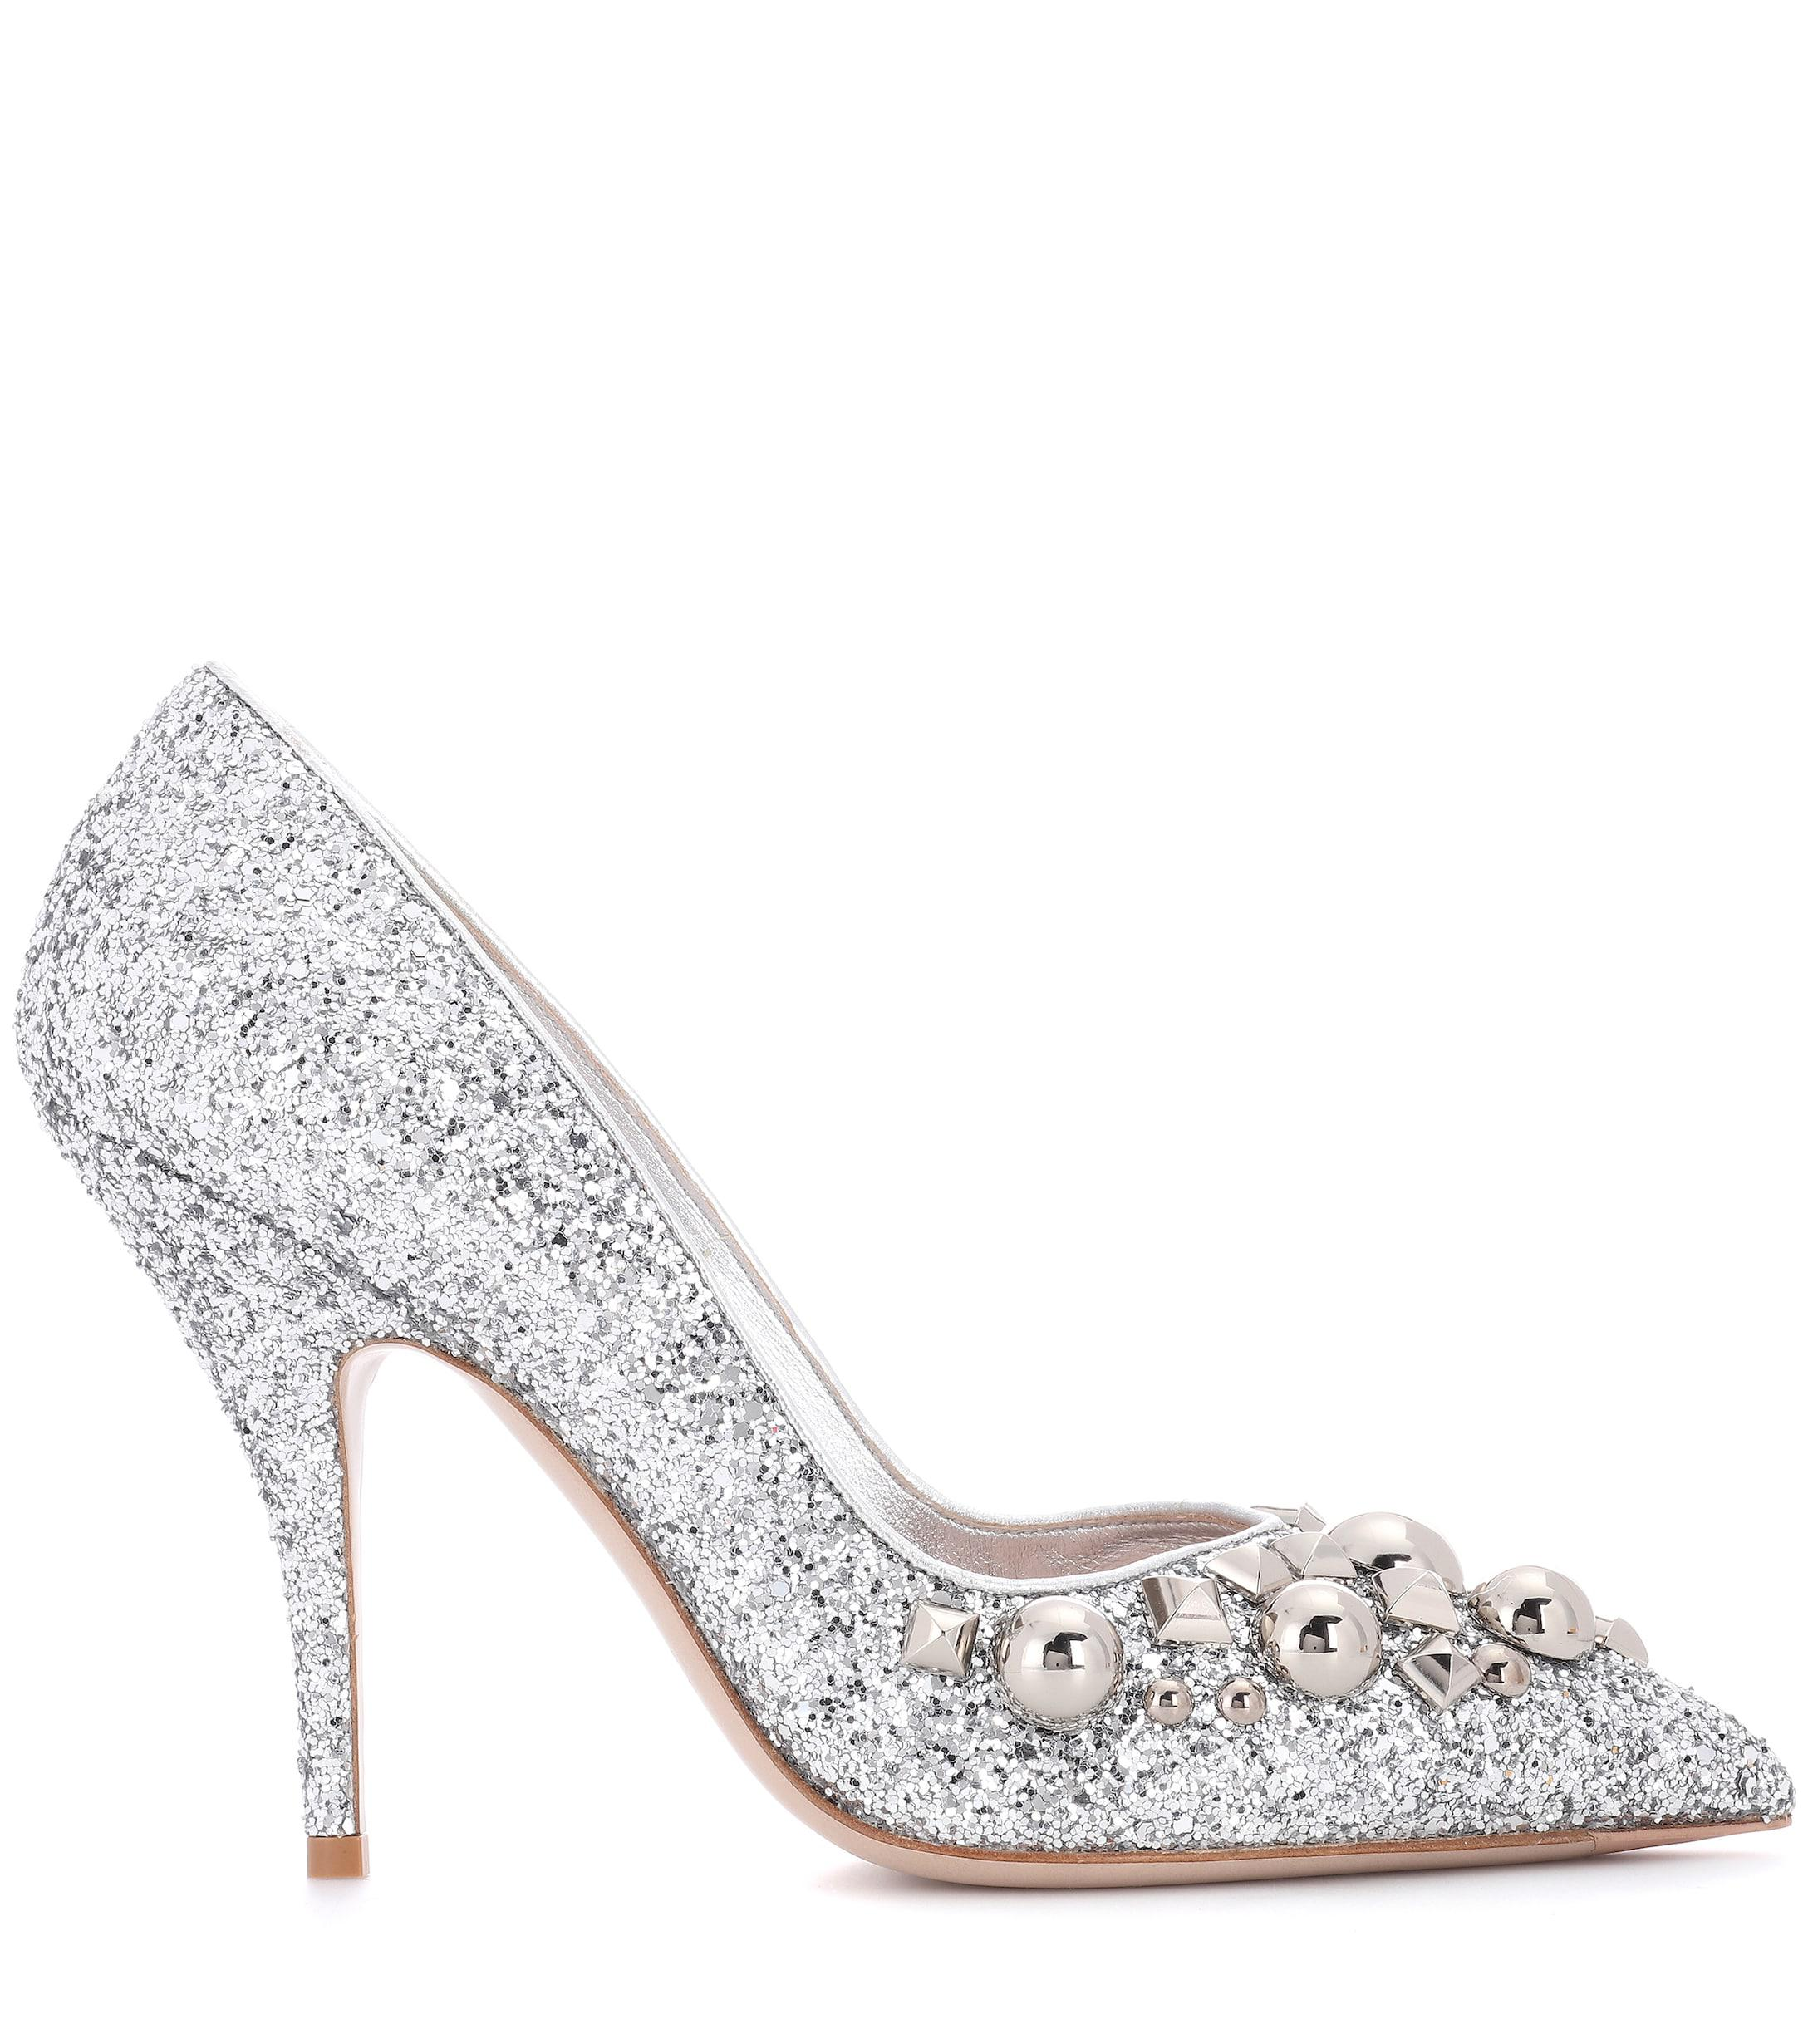 917e2144e9c Lyst - Miu Miu Studded Glitter Pumps in Metallic